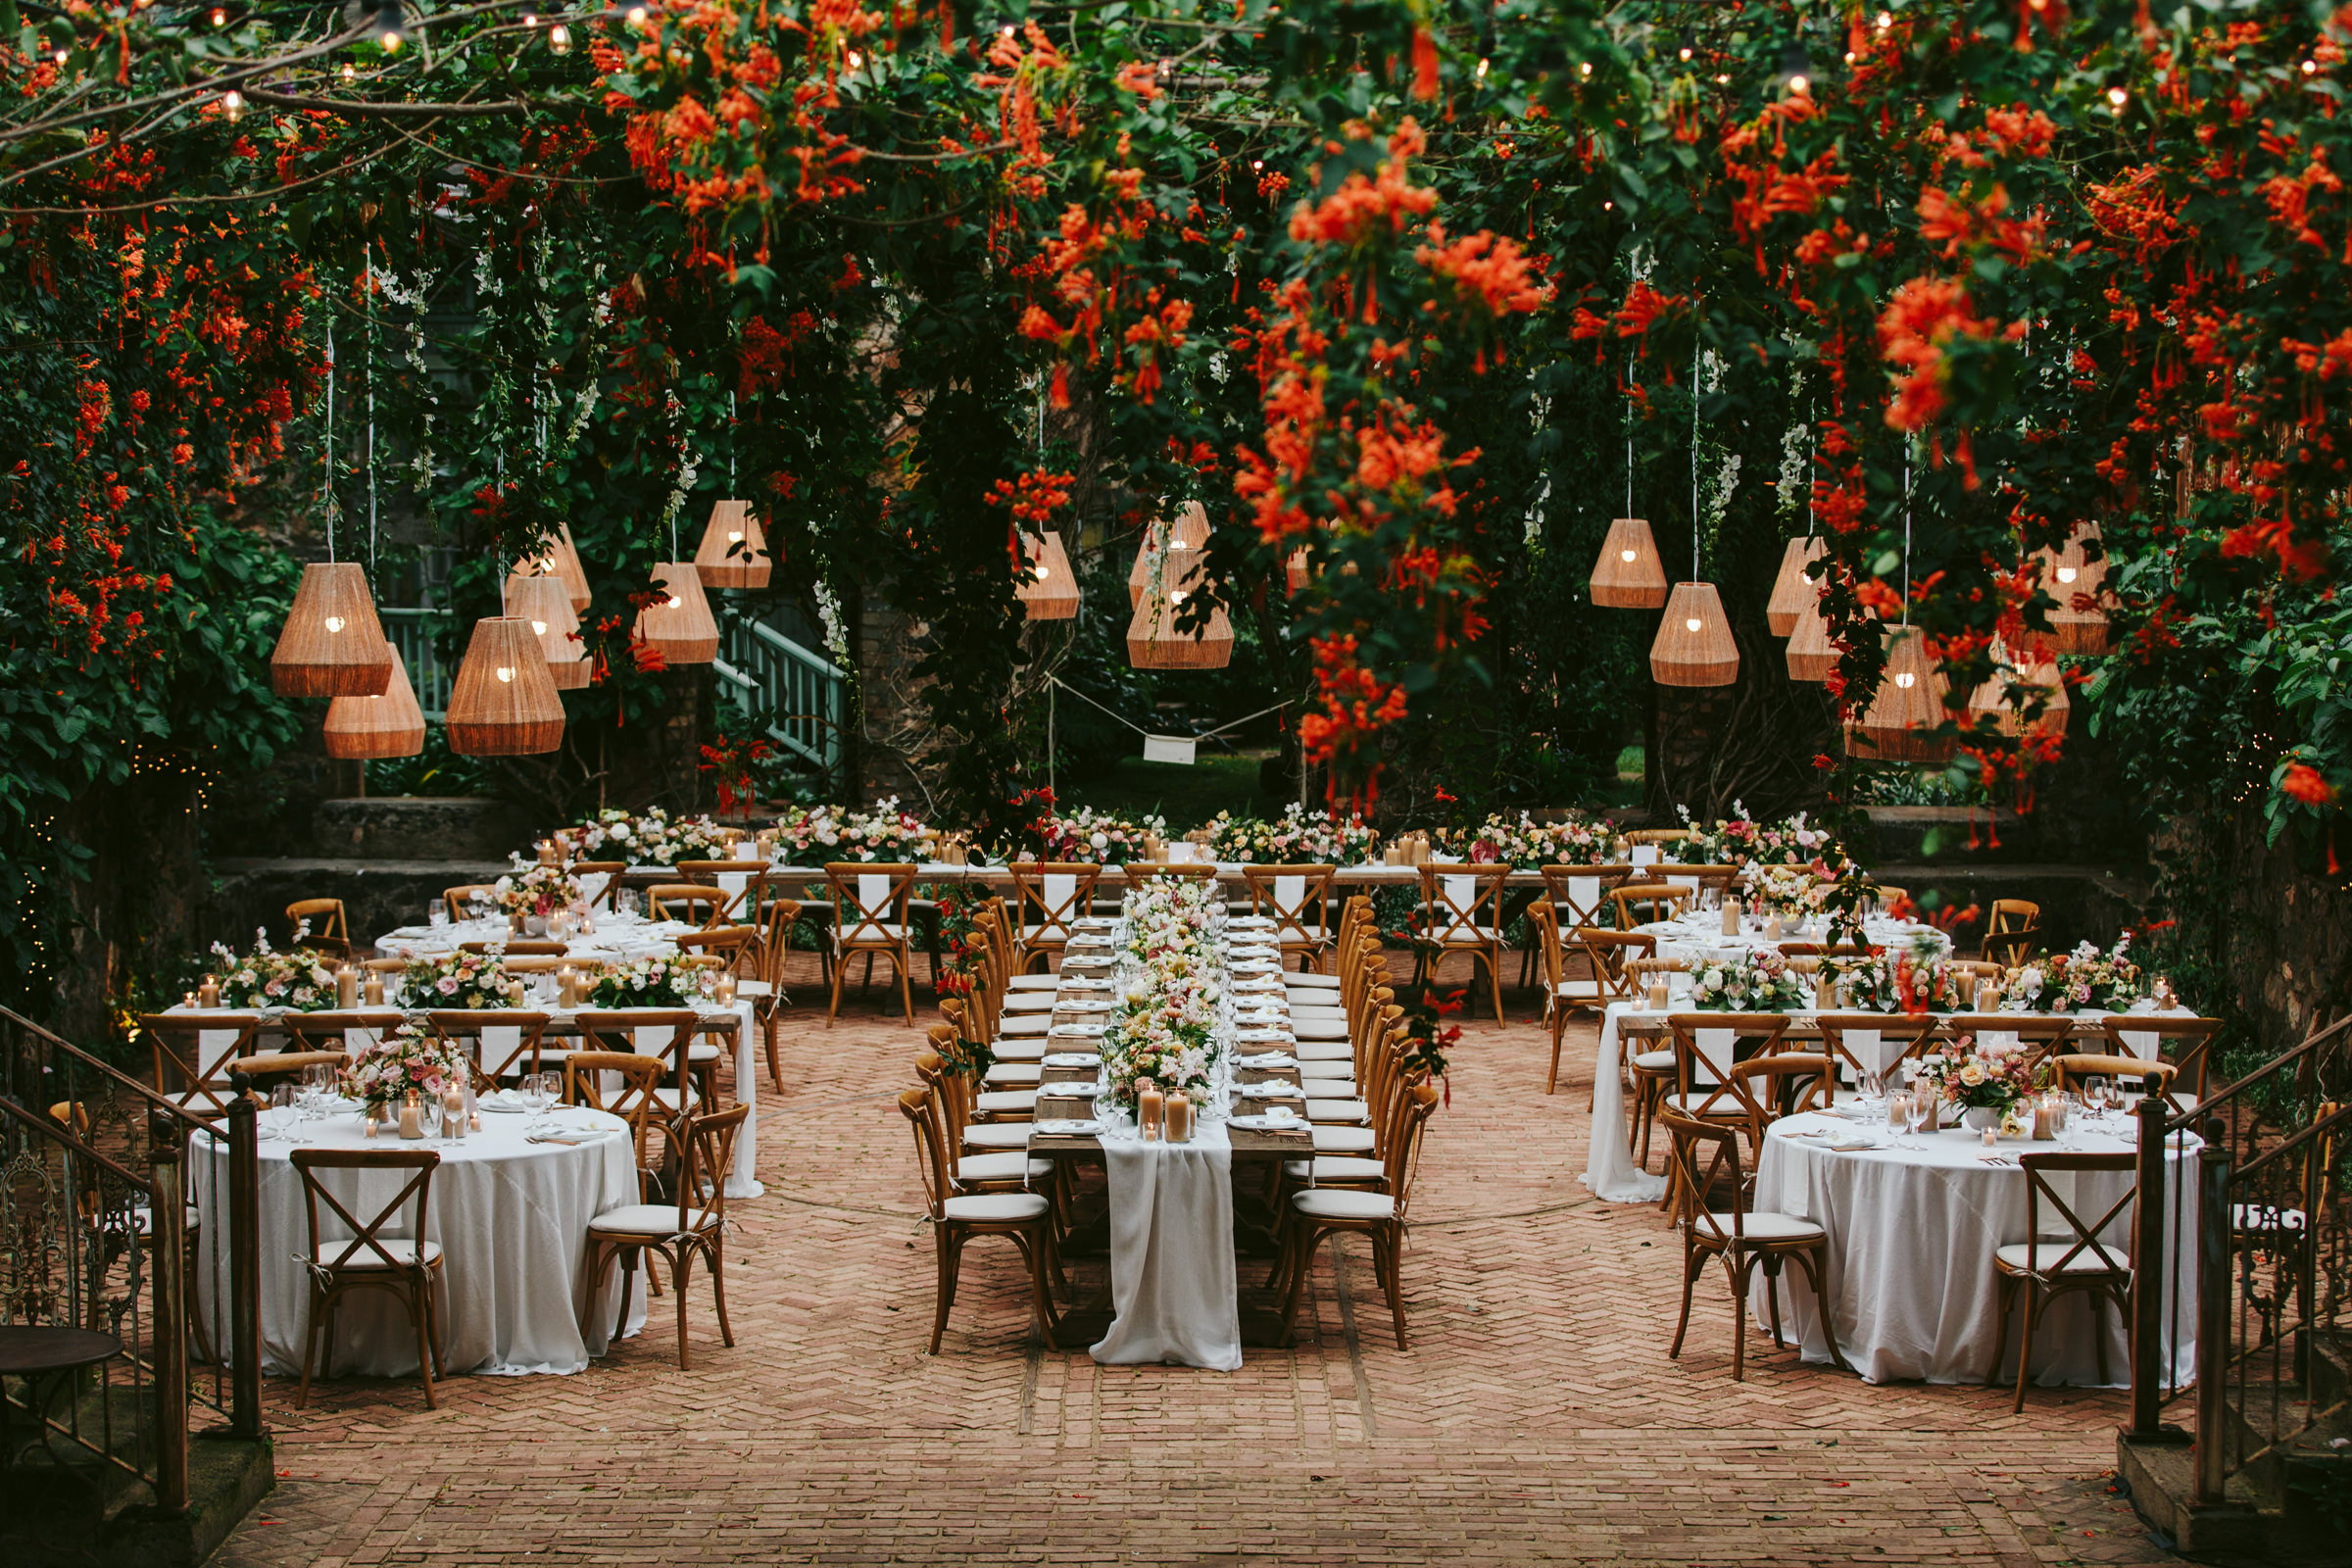 Reception decor in tangerine and white - photo by Melia Lucida